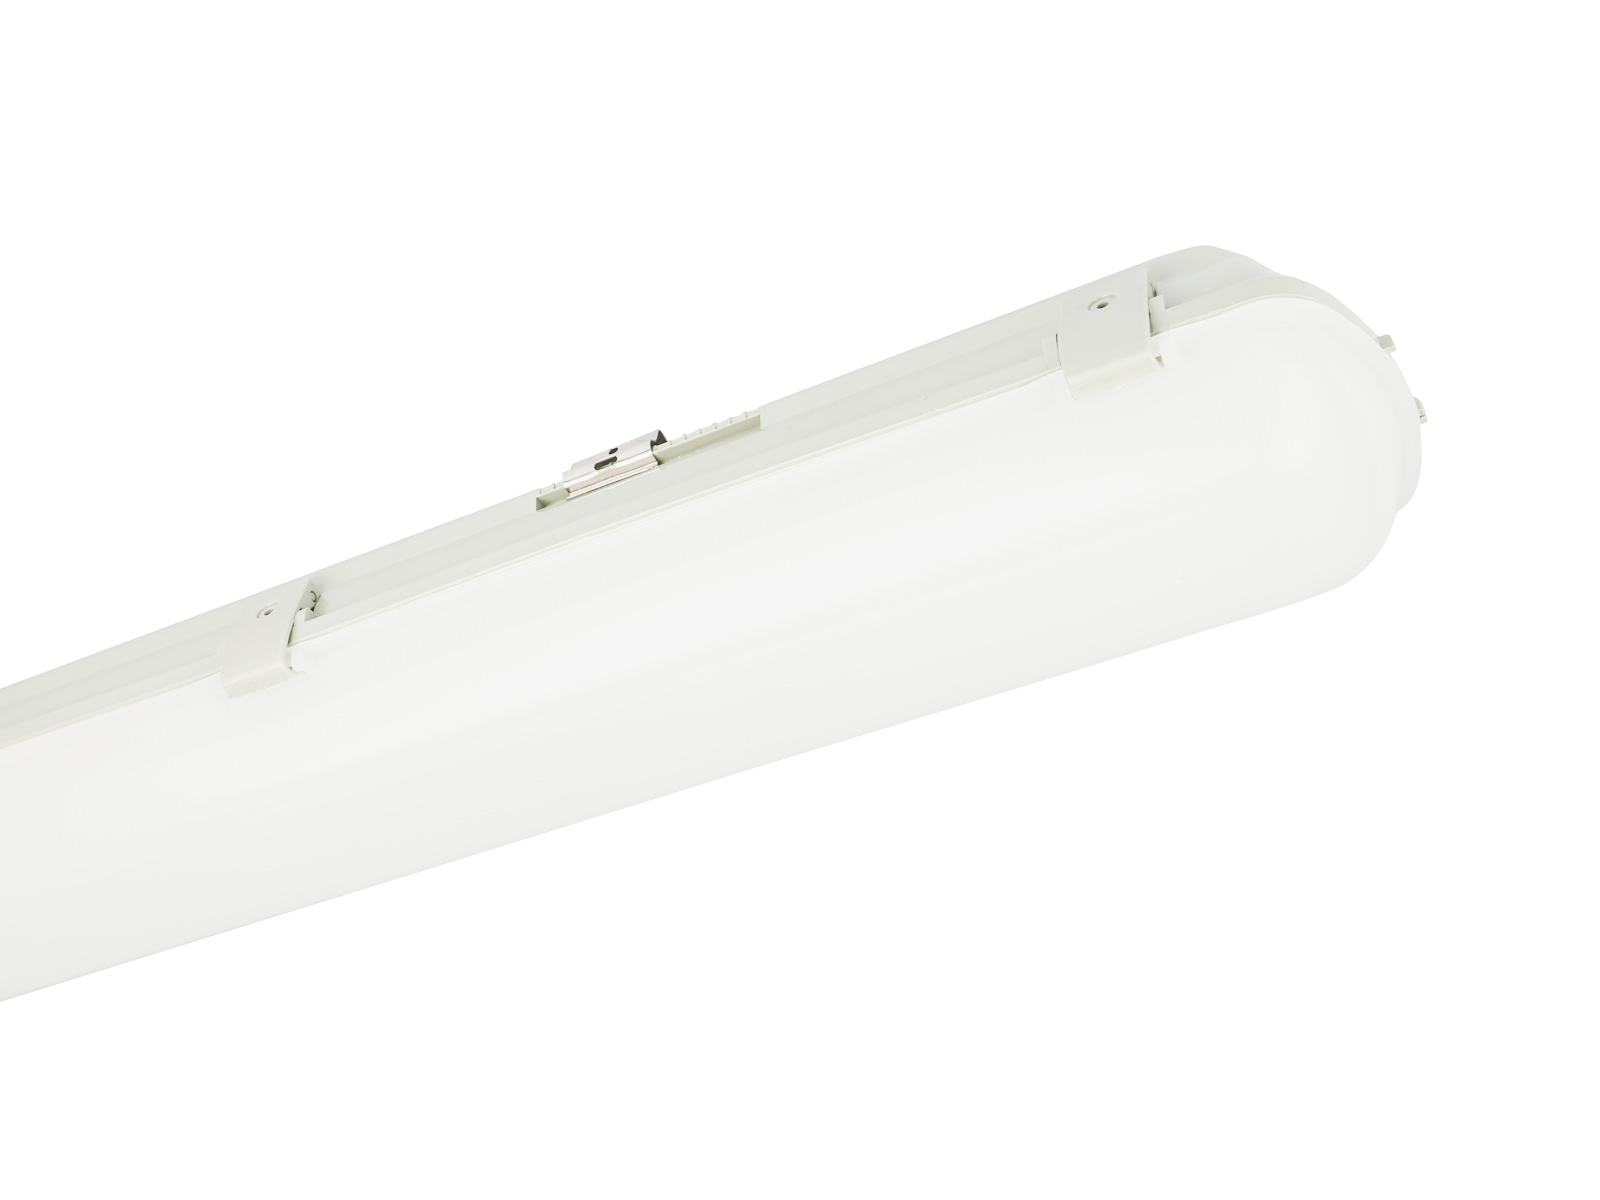 TRP02 LED Batten